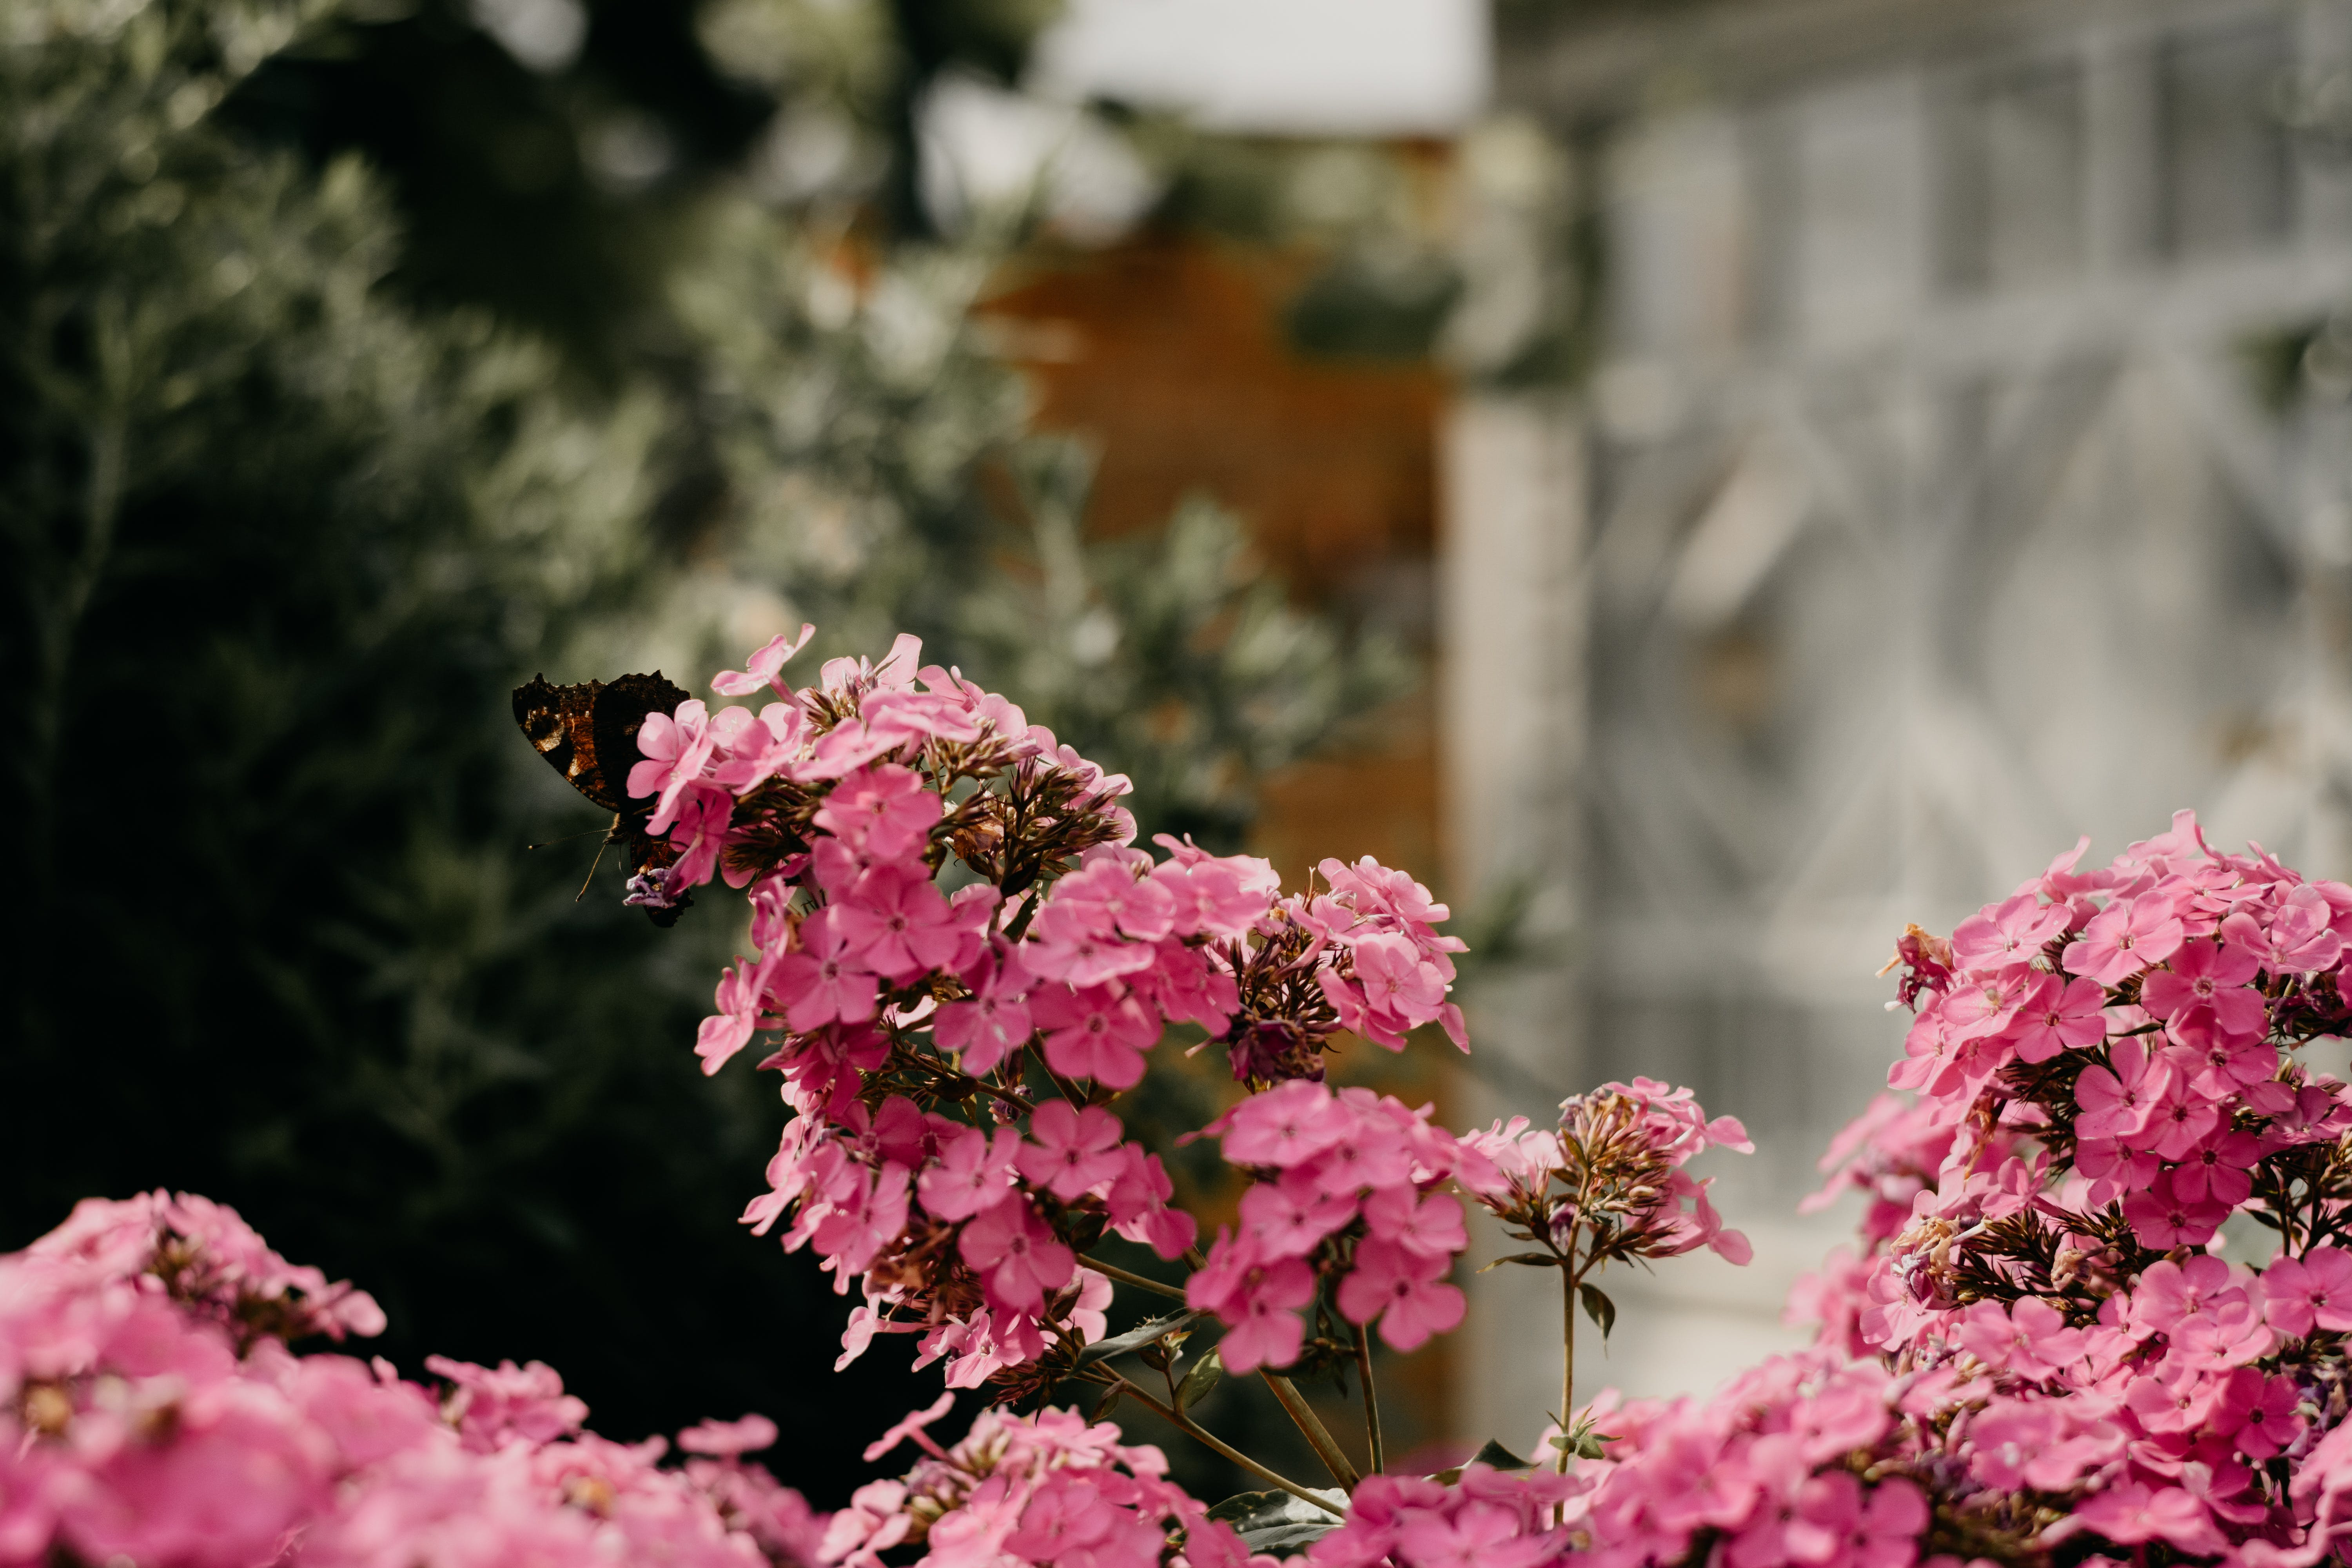 Close-up Photo of Black and Orange Butterfly Perched on Pink Flowers